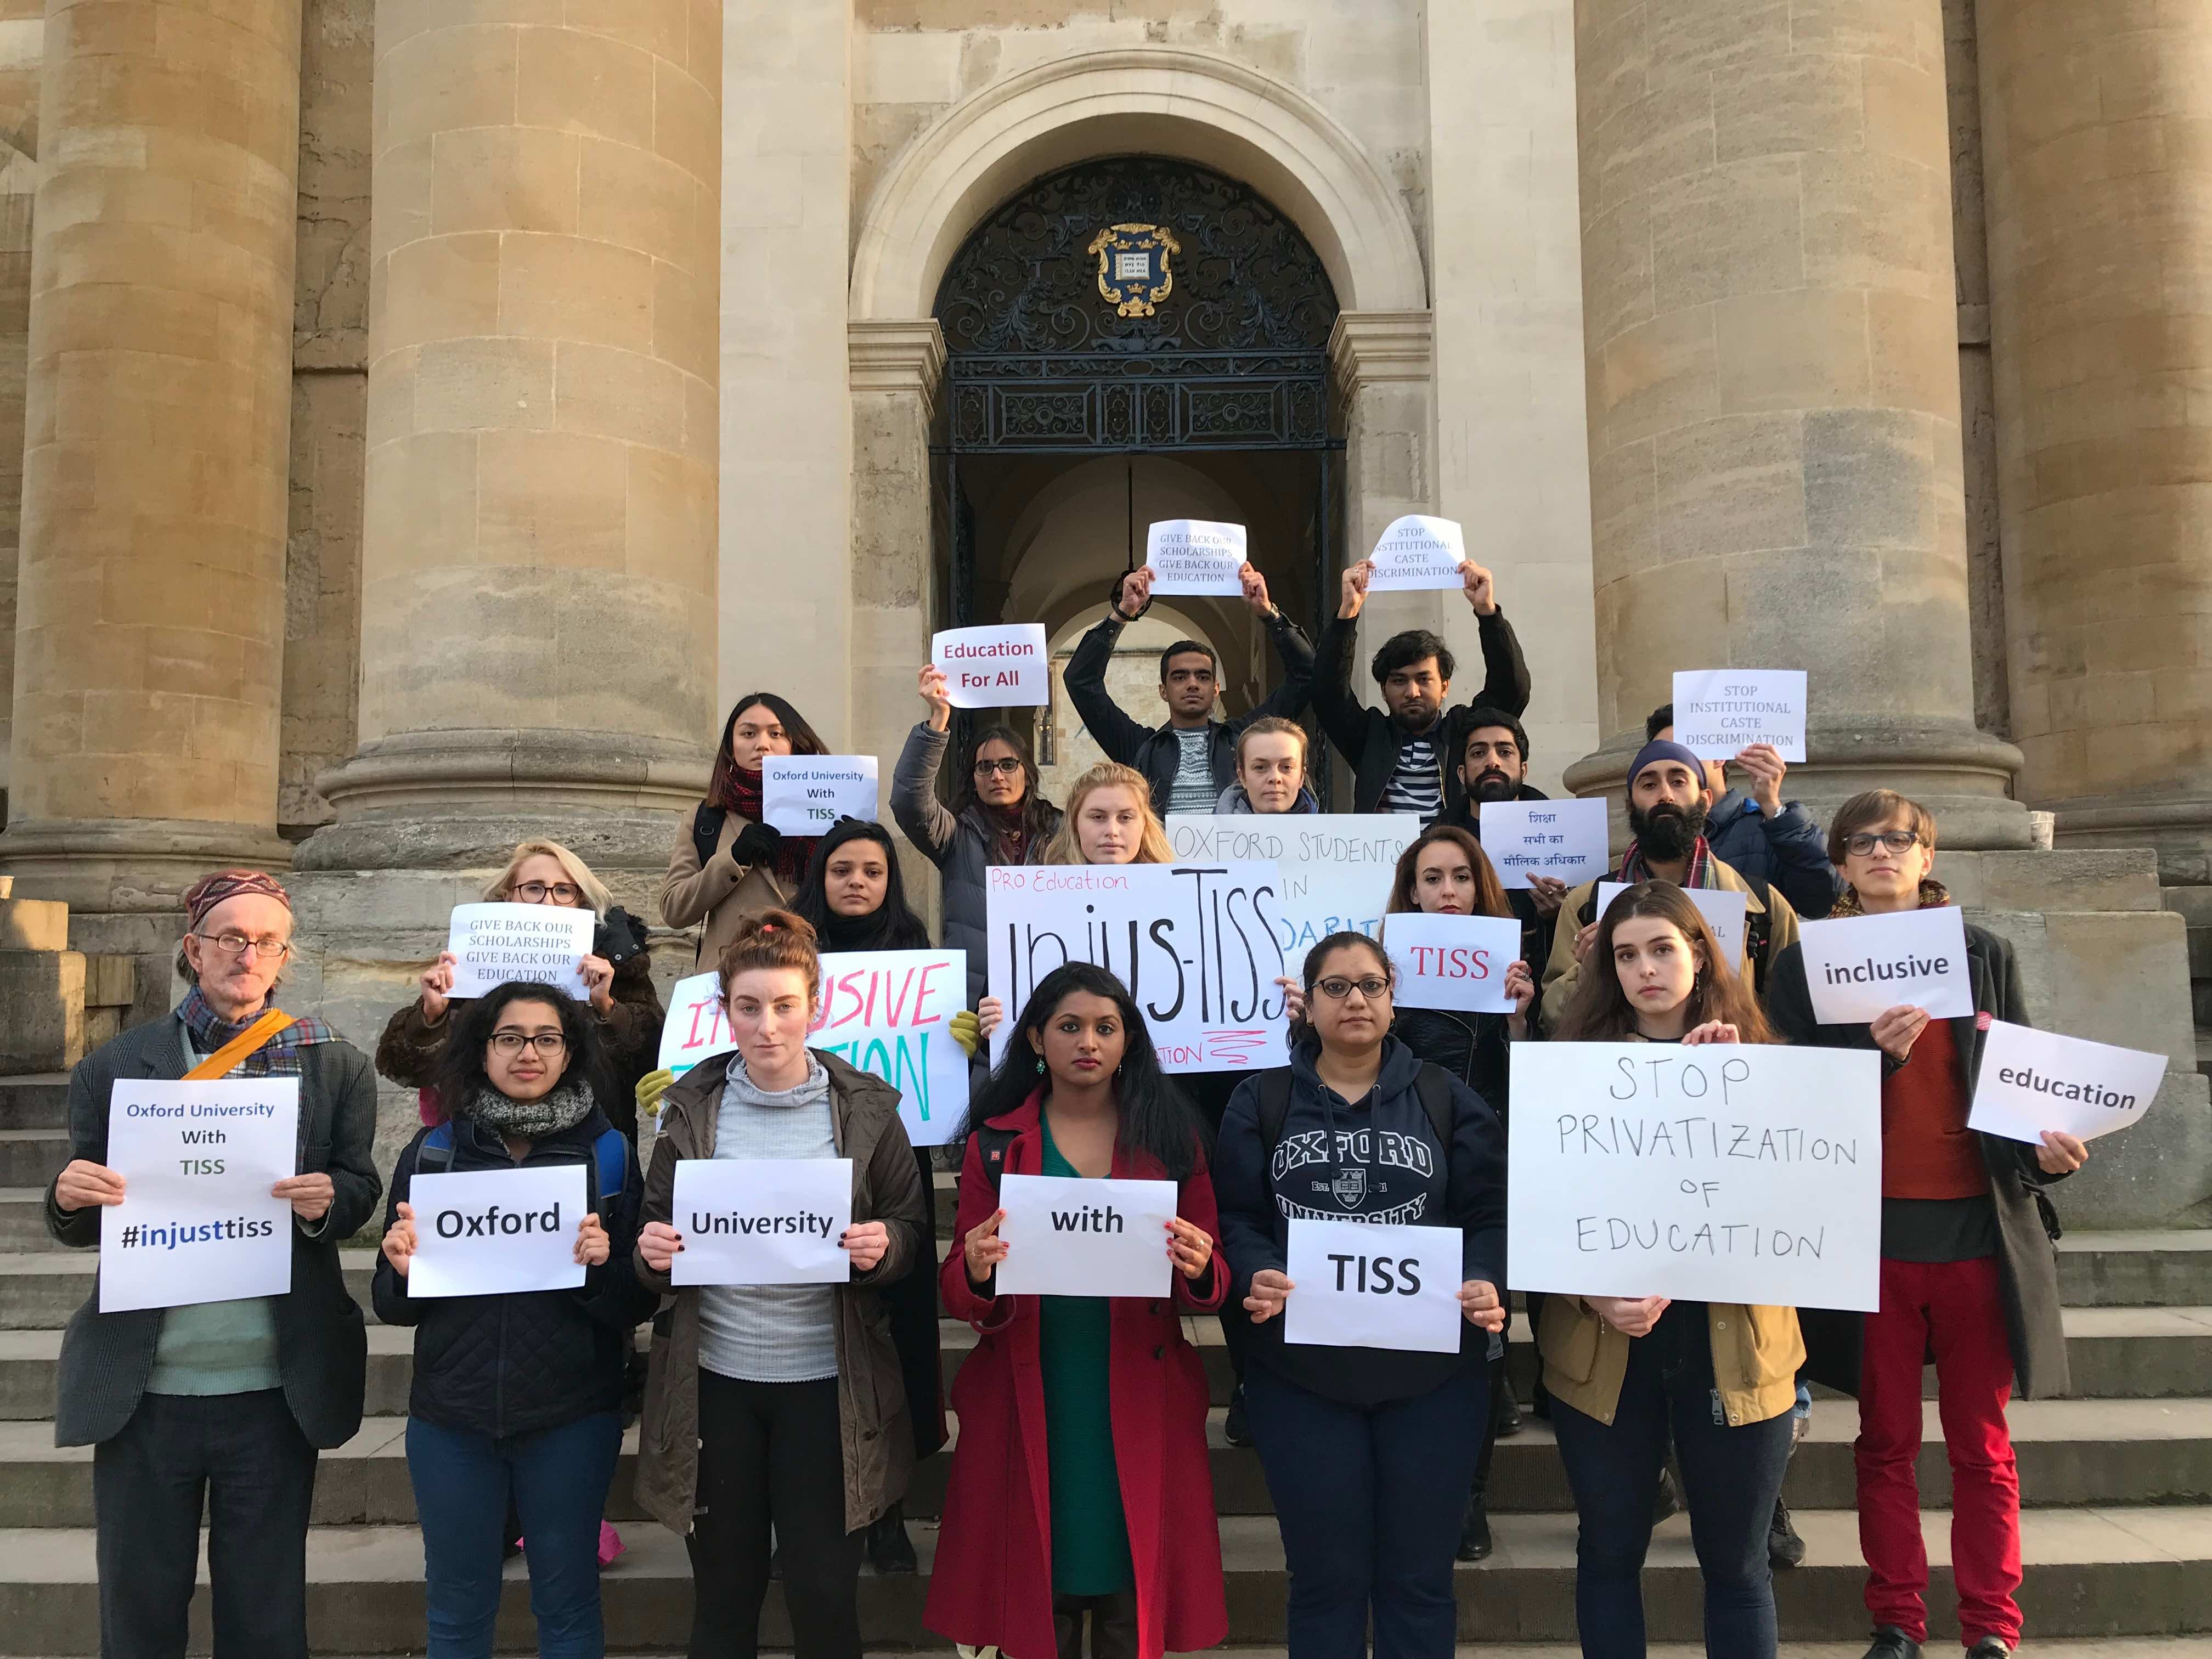 Why It's Important for Students from Across the World to Support Protests at TISS